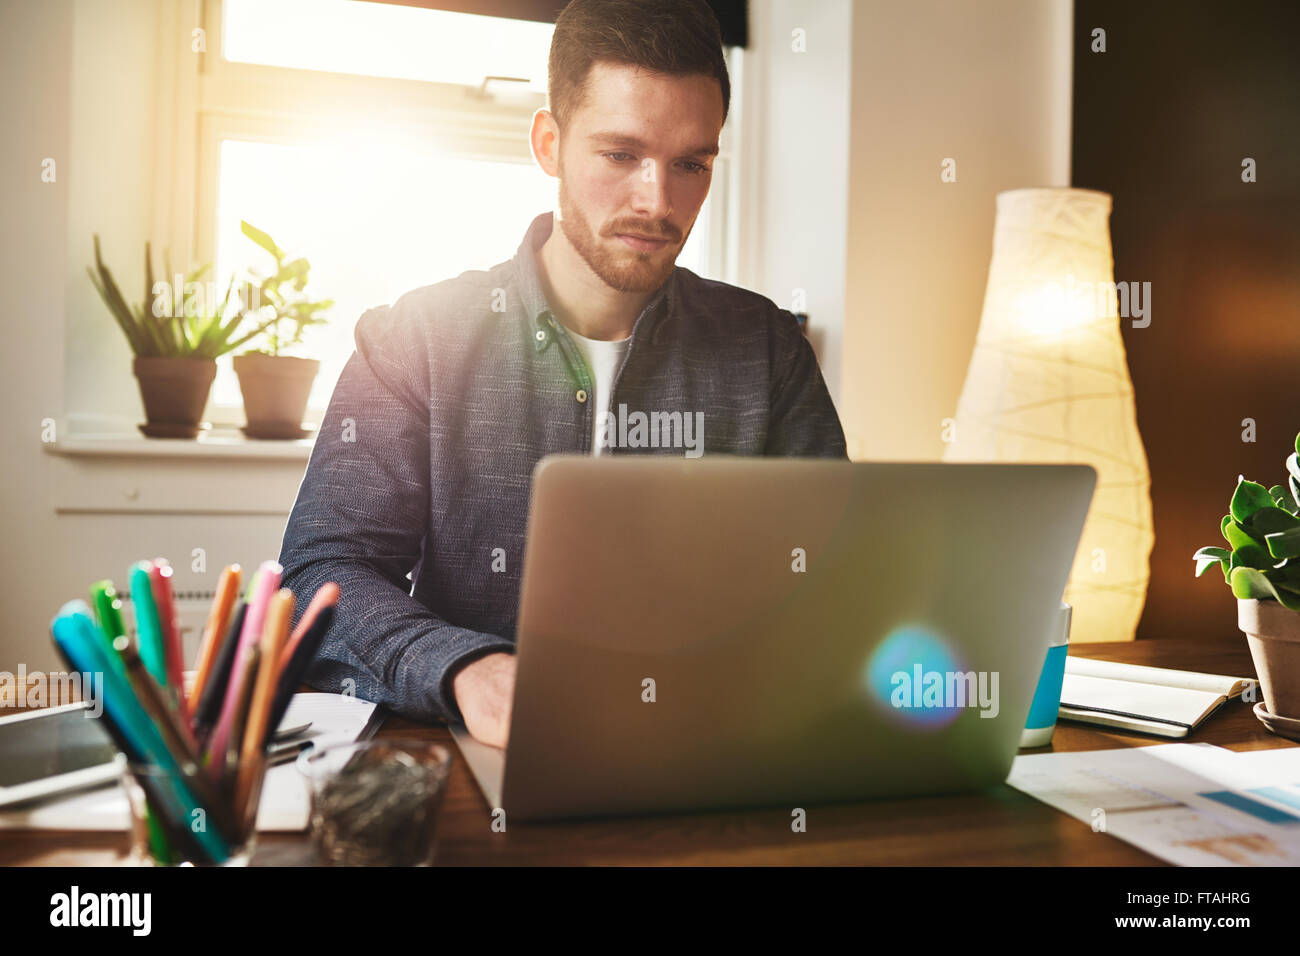 Worried businessman reading data on his laptop with a solemn expression as he works in his home office, colorful - Stock Image